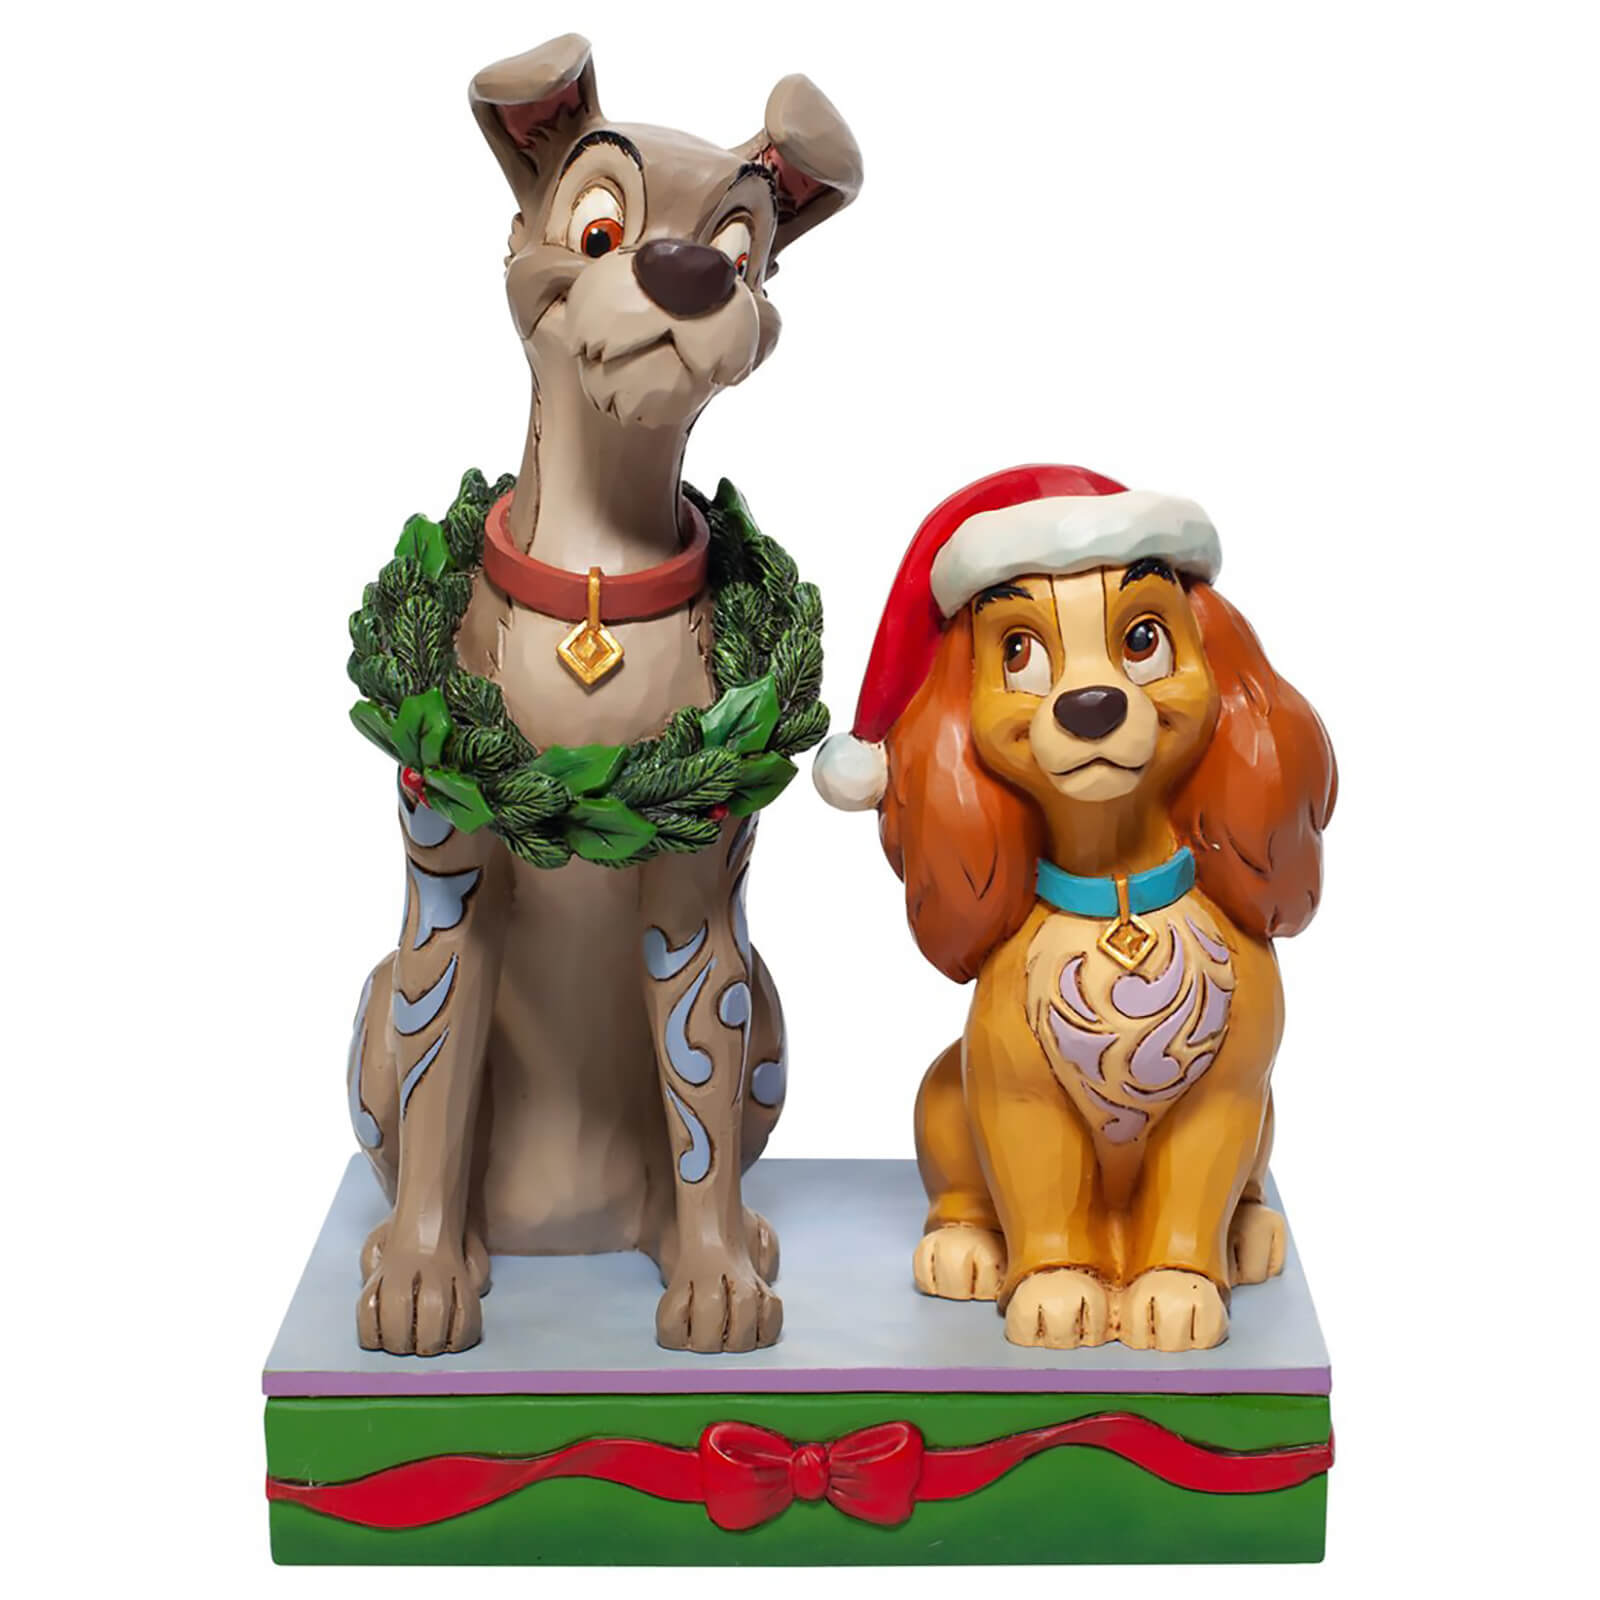 Image of Disney Traditions Lady and the Tramp Figurine 14cm